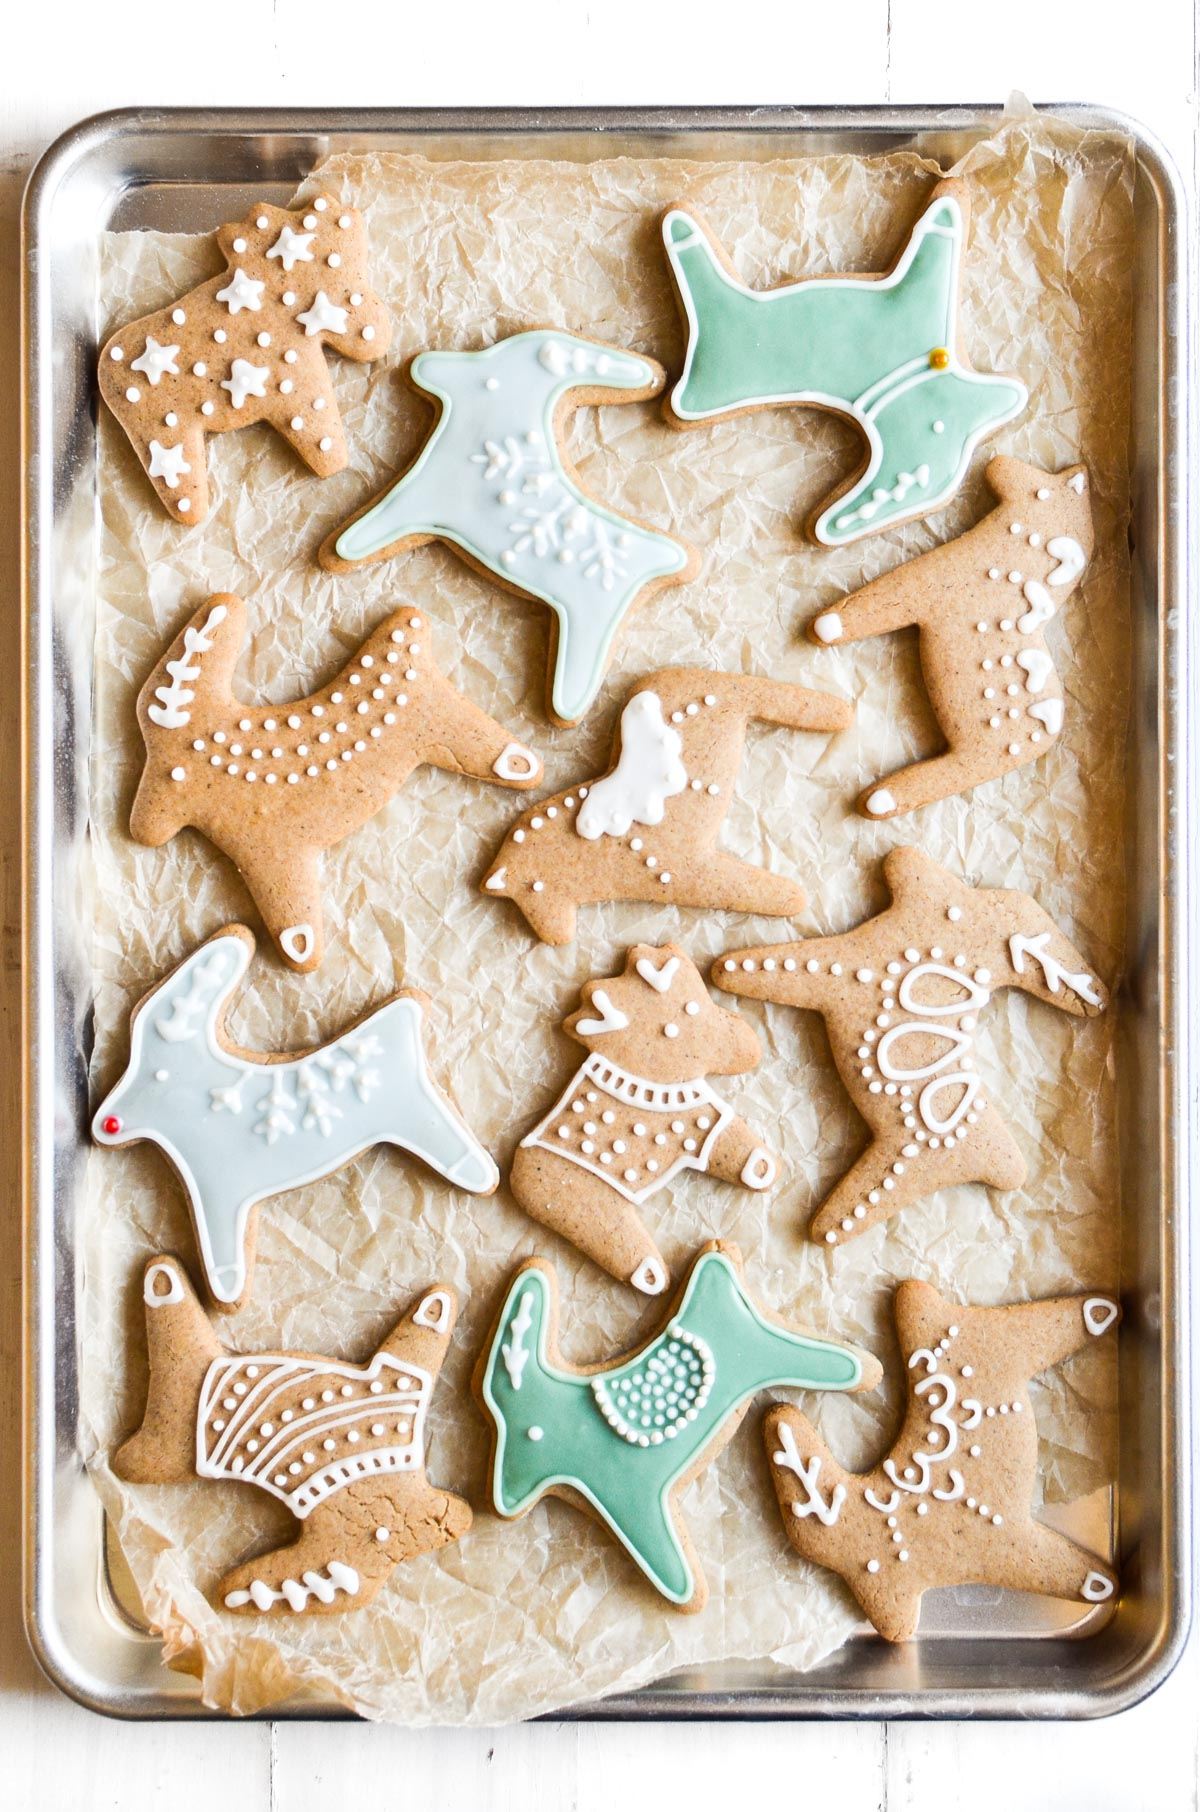 Pepparkakor Cookies on a baking tray.